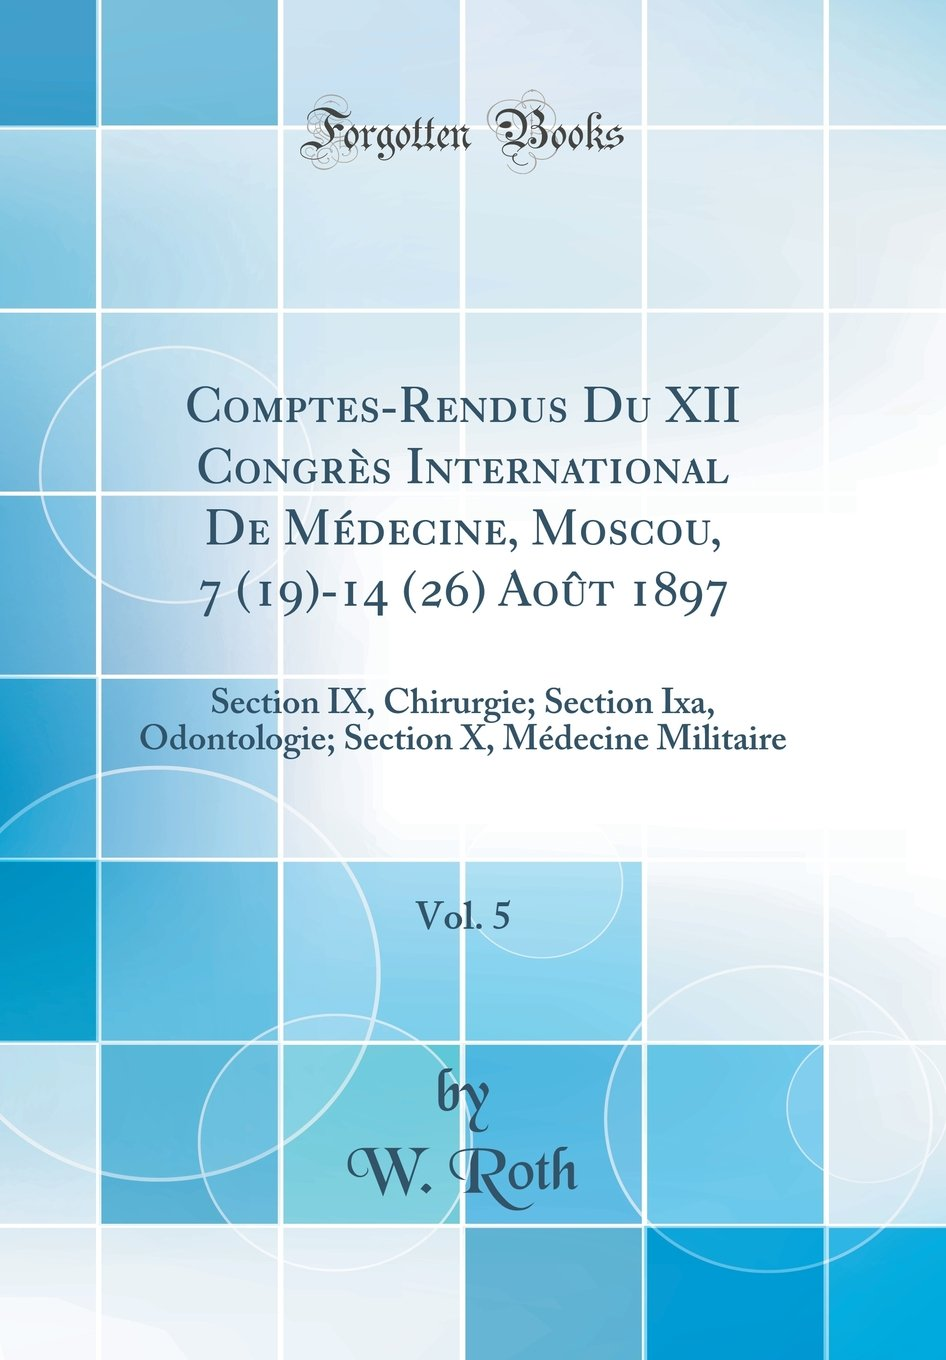 Read Online Comptes-Rendus Du XII Congres International de Medecine, Moscou, 7 (19)-14 (26) Aout 1897, Vol. 5: Section IX, Chirurgie; Section Ixa, Odontologie; ... Militaire (Classic Reprint) (German Edition) pdf epub